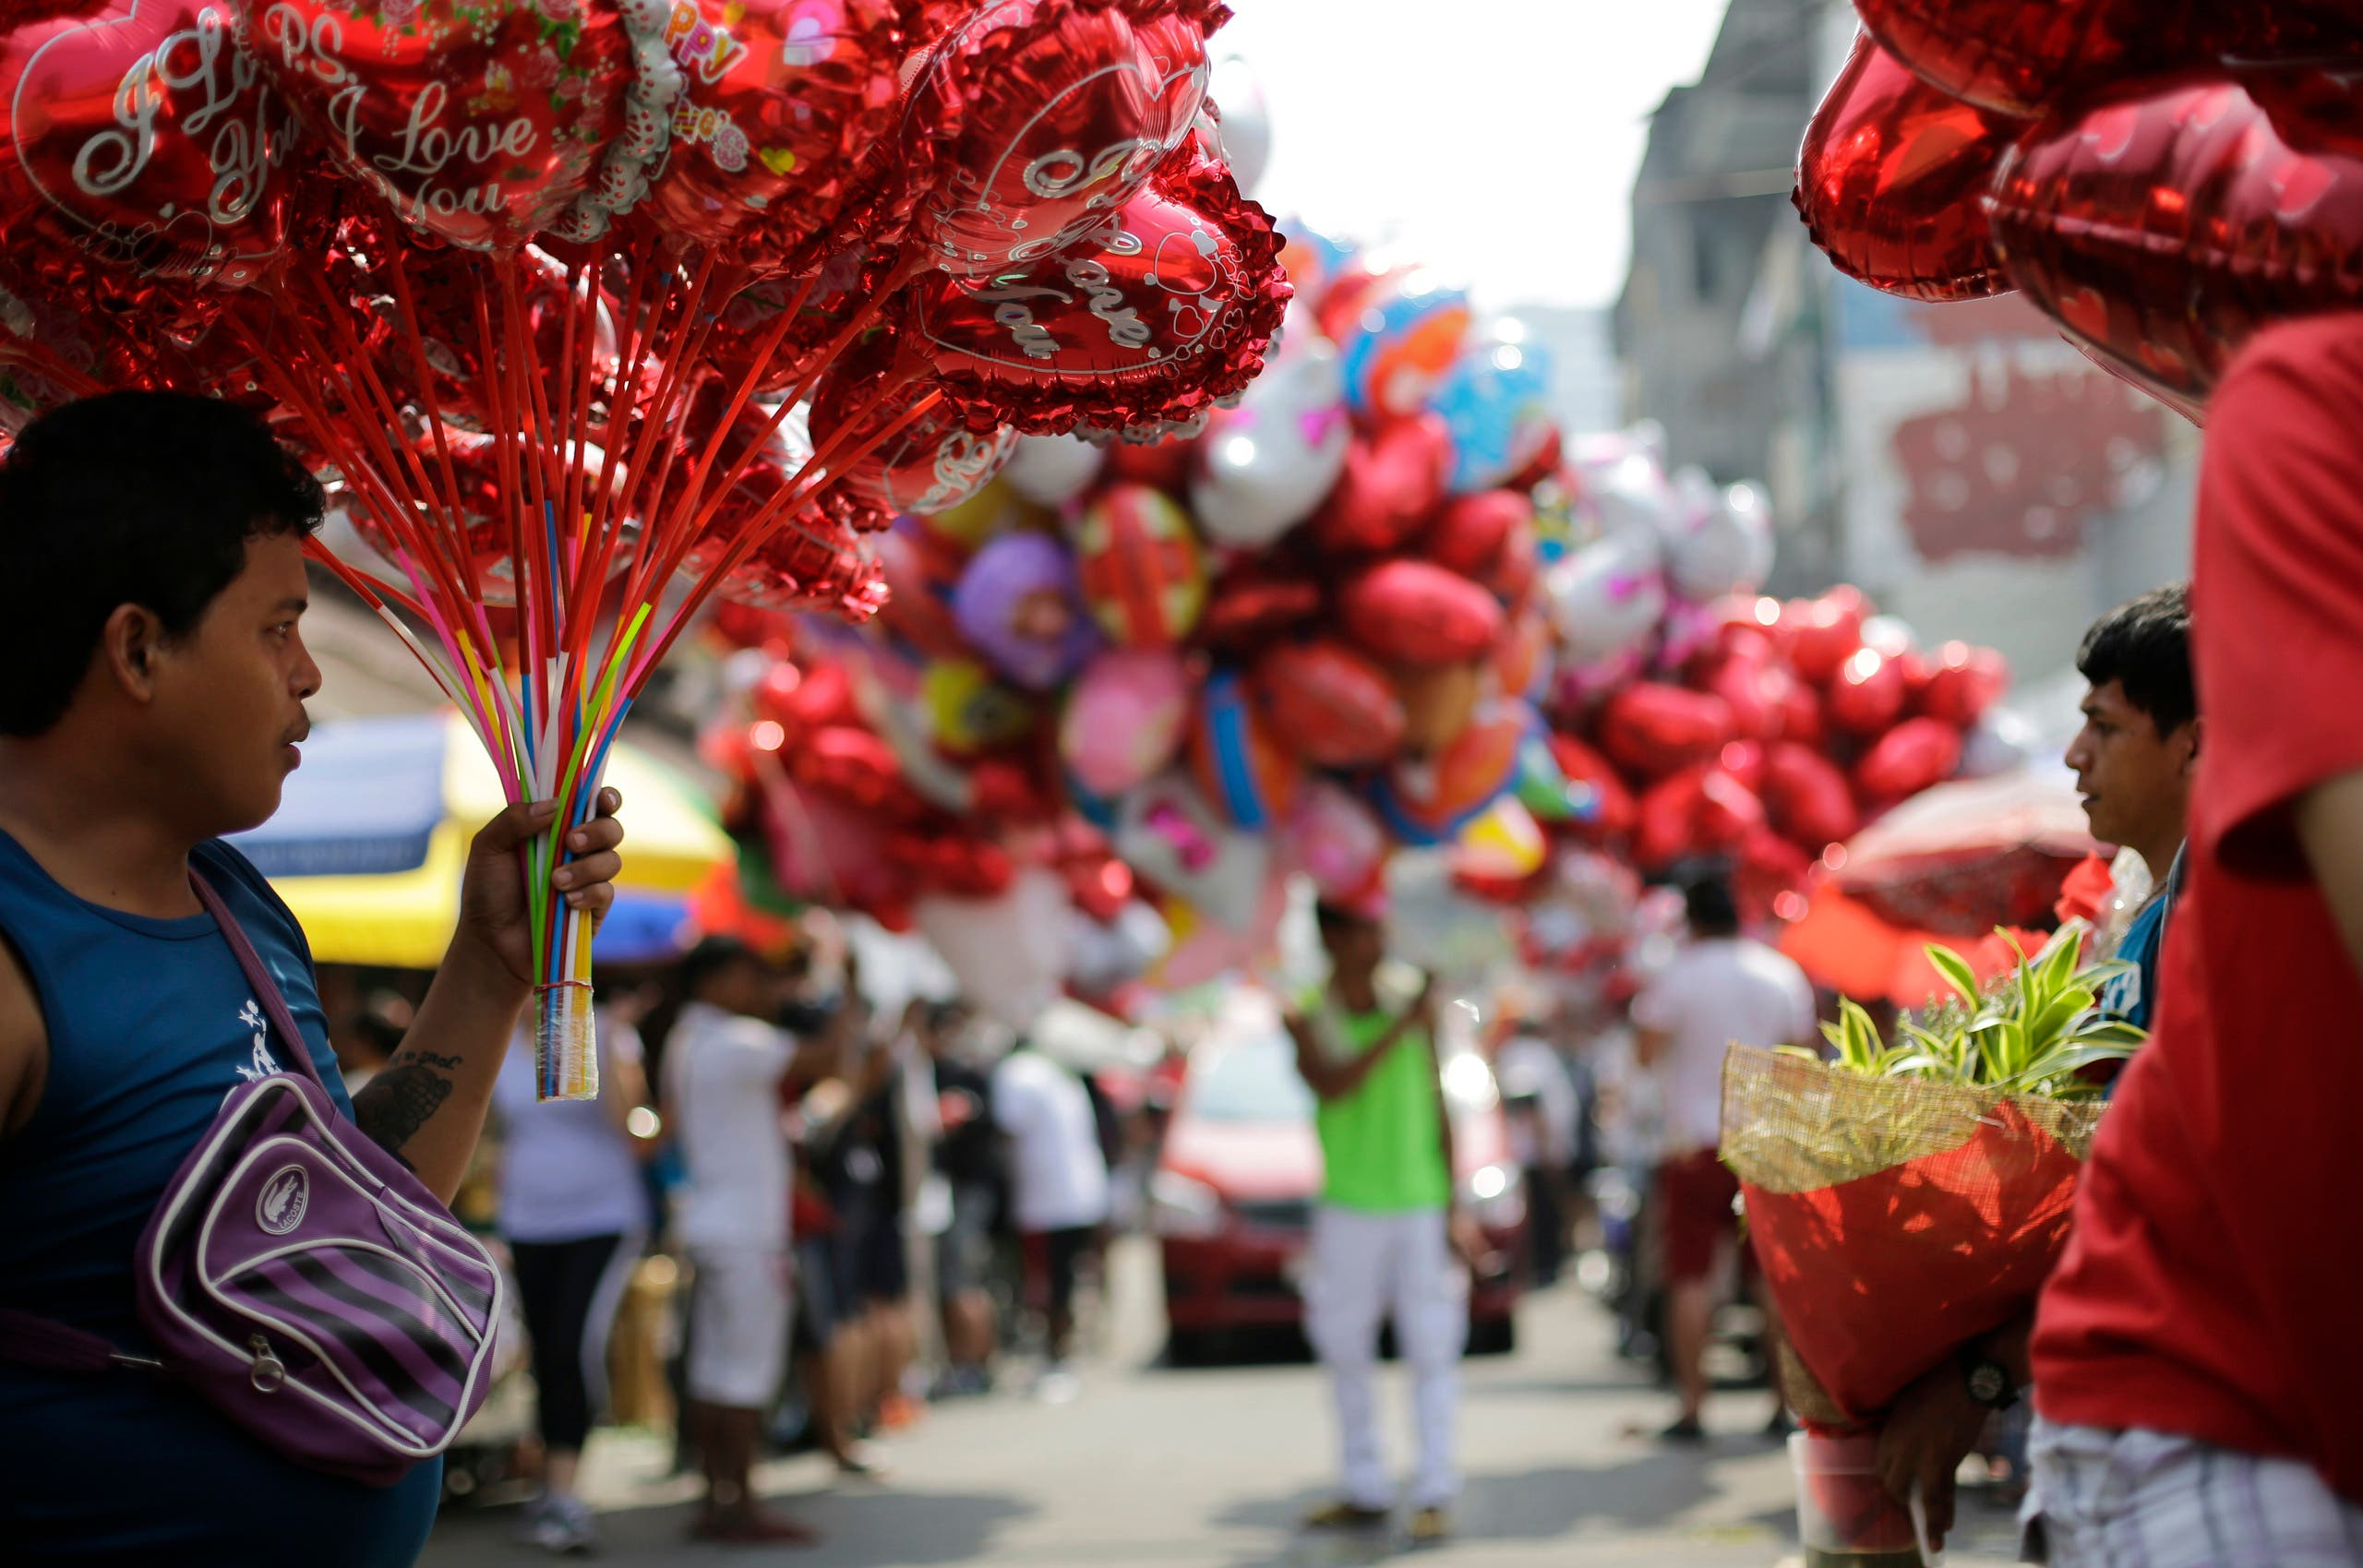 A Filipino sells hear-shaped balloons at a flower market in Manila, Philippines on Valentine's Day, Sunday, Feb. 14, 2016. (AP)